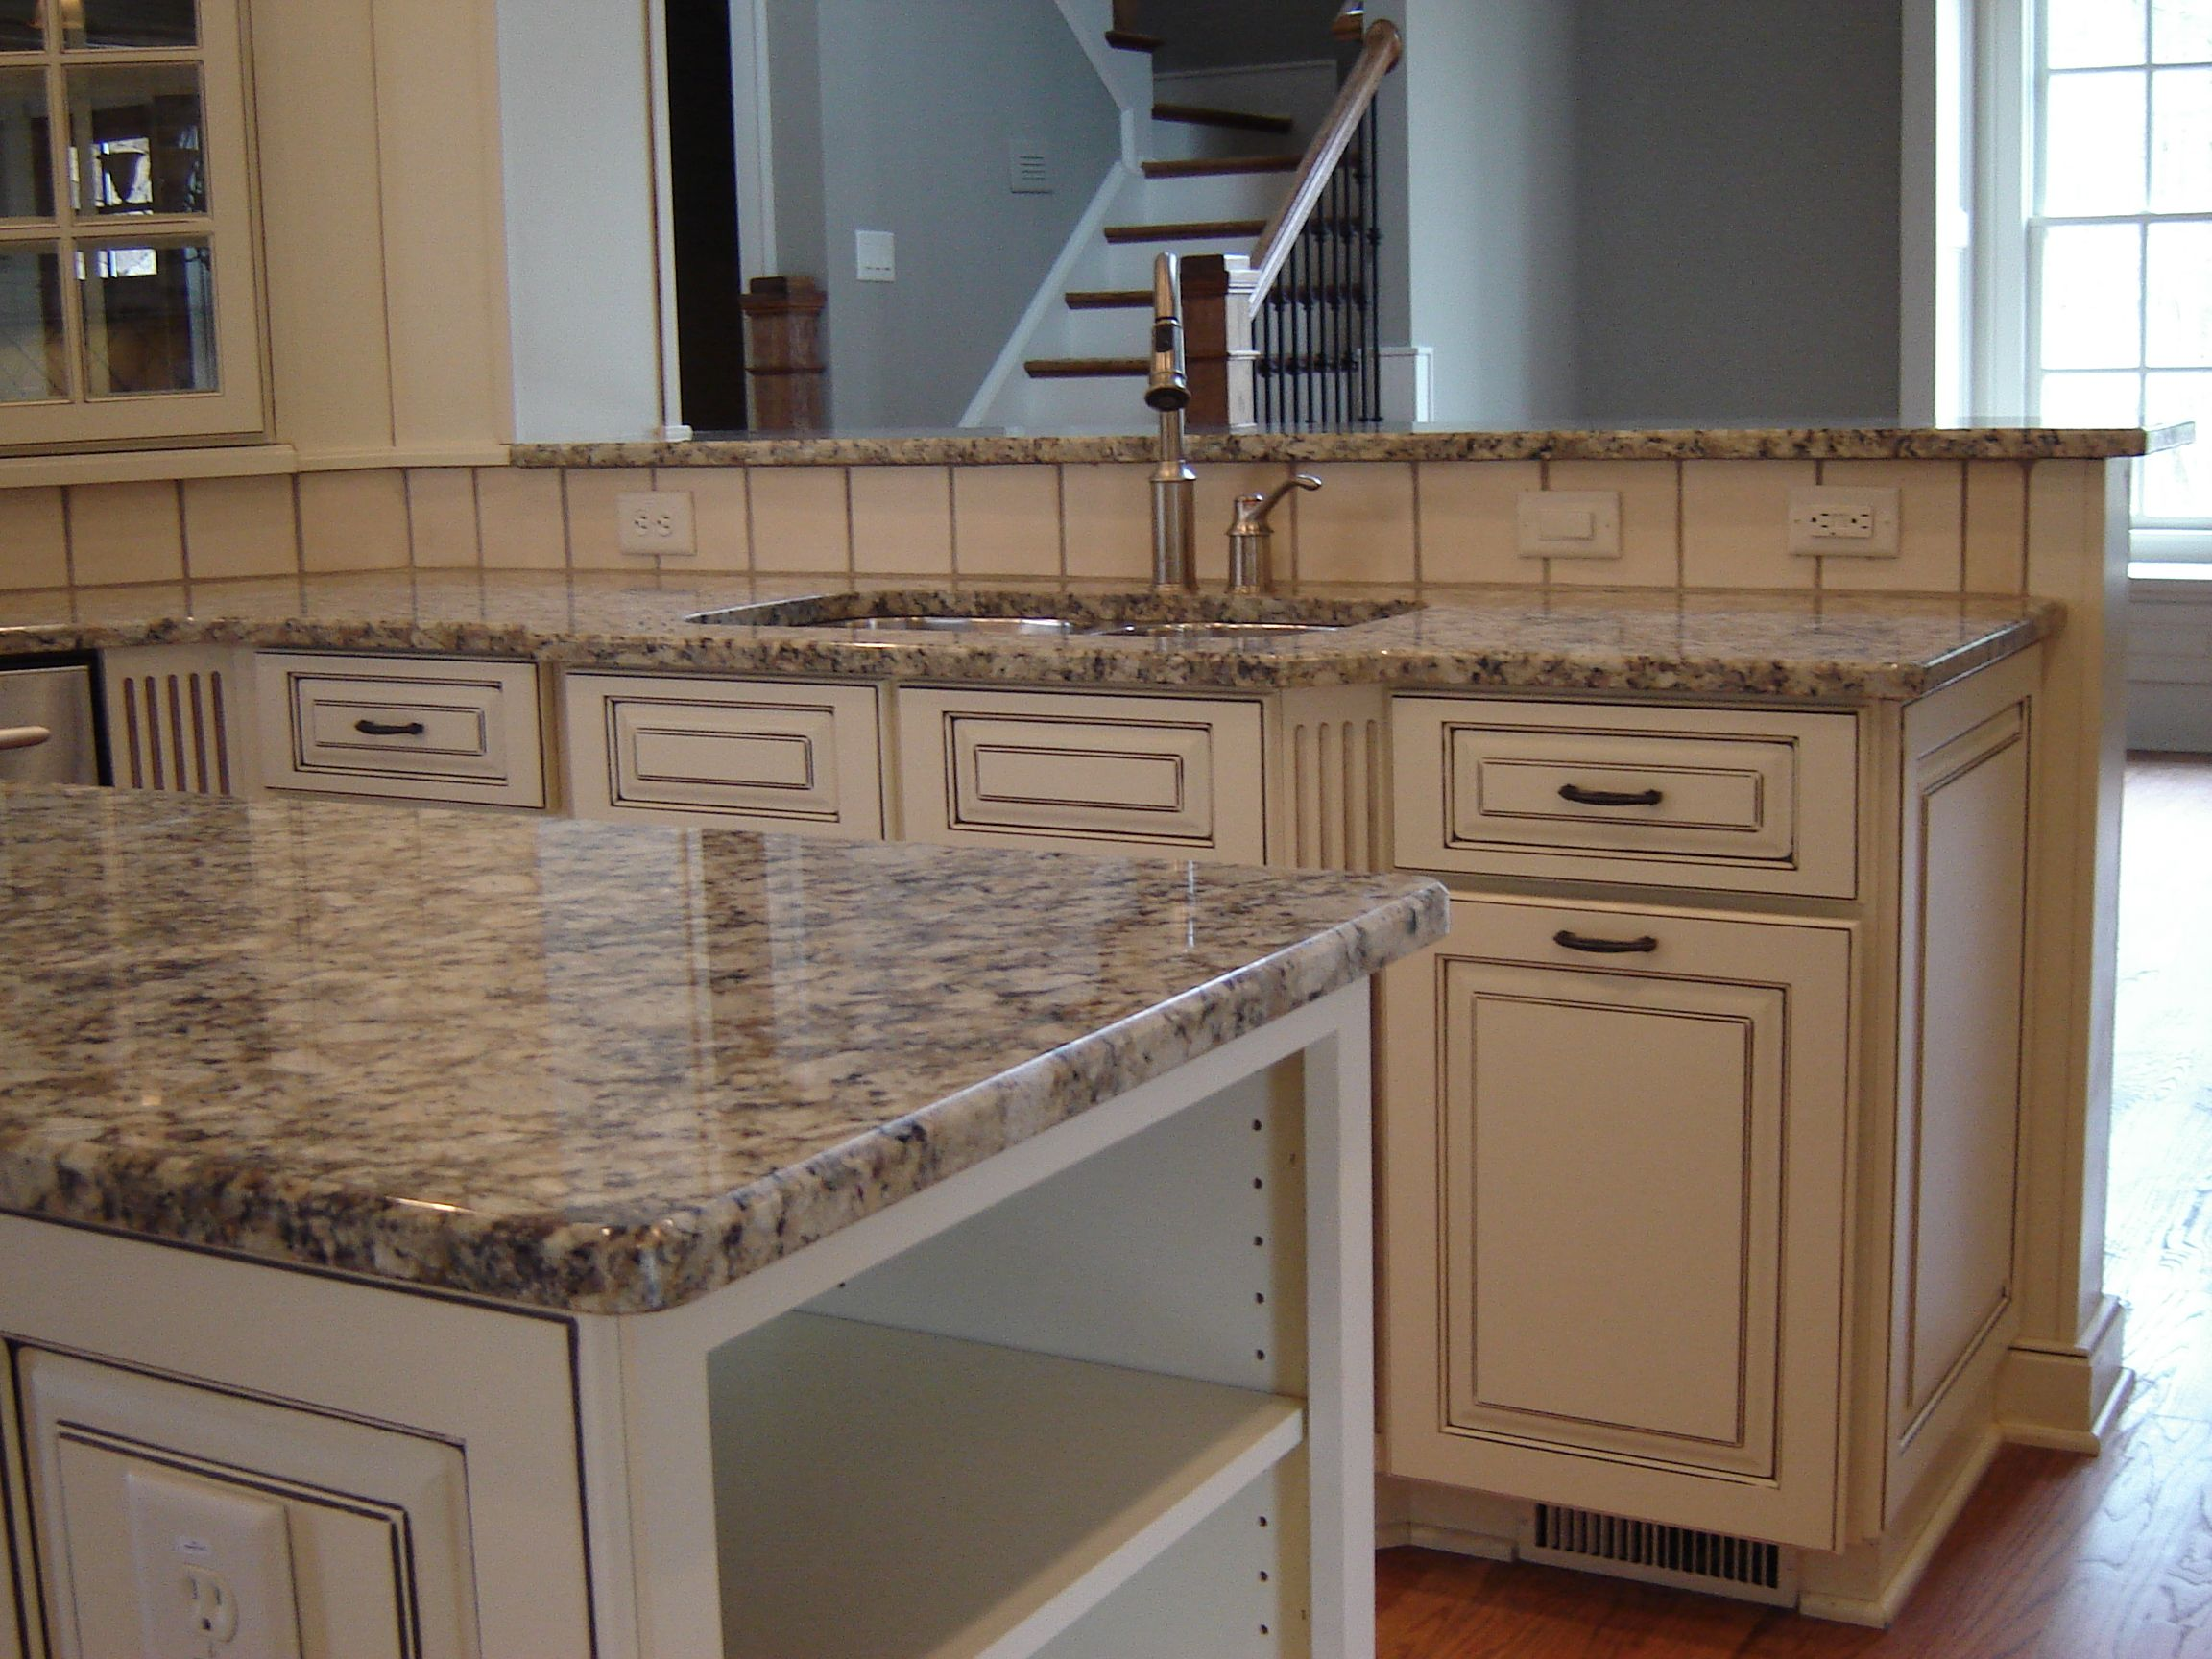 granite marble quartz countertops kitchen remodeling atlanta Dove White cabinets with taupe glaze Gallo Napoleone granite counters Recent project Atlanta